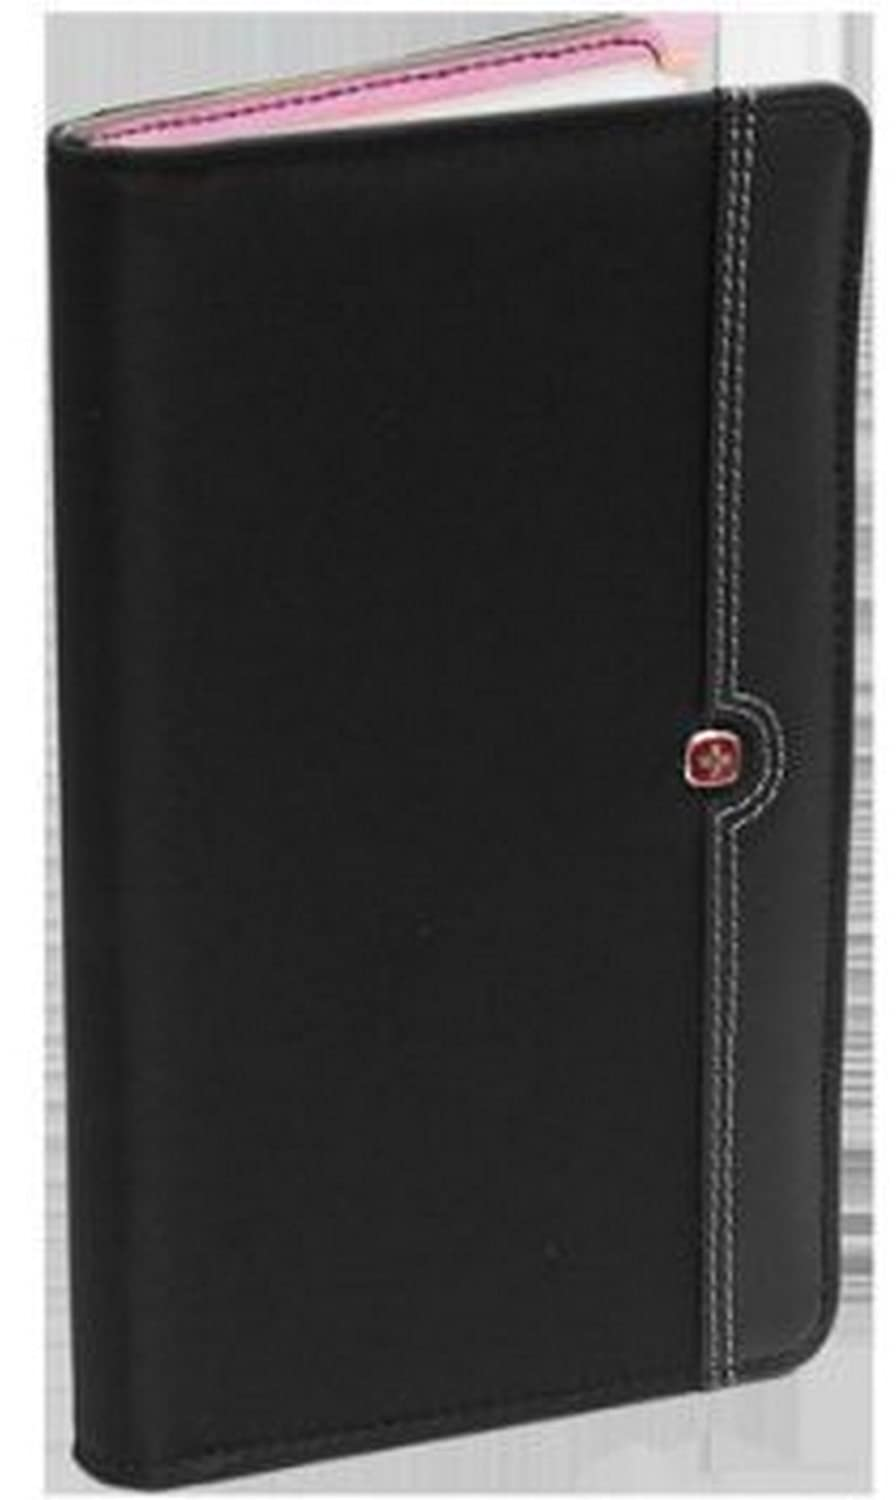 Amazon.com : SWISS ARMY Rhea 120 Card File by Wenger : Business Card ...